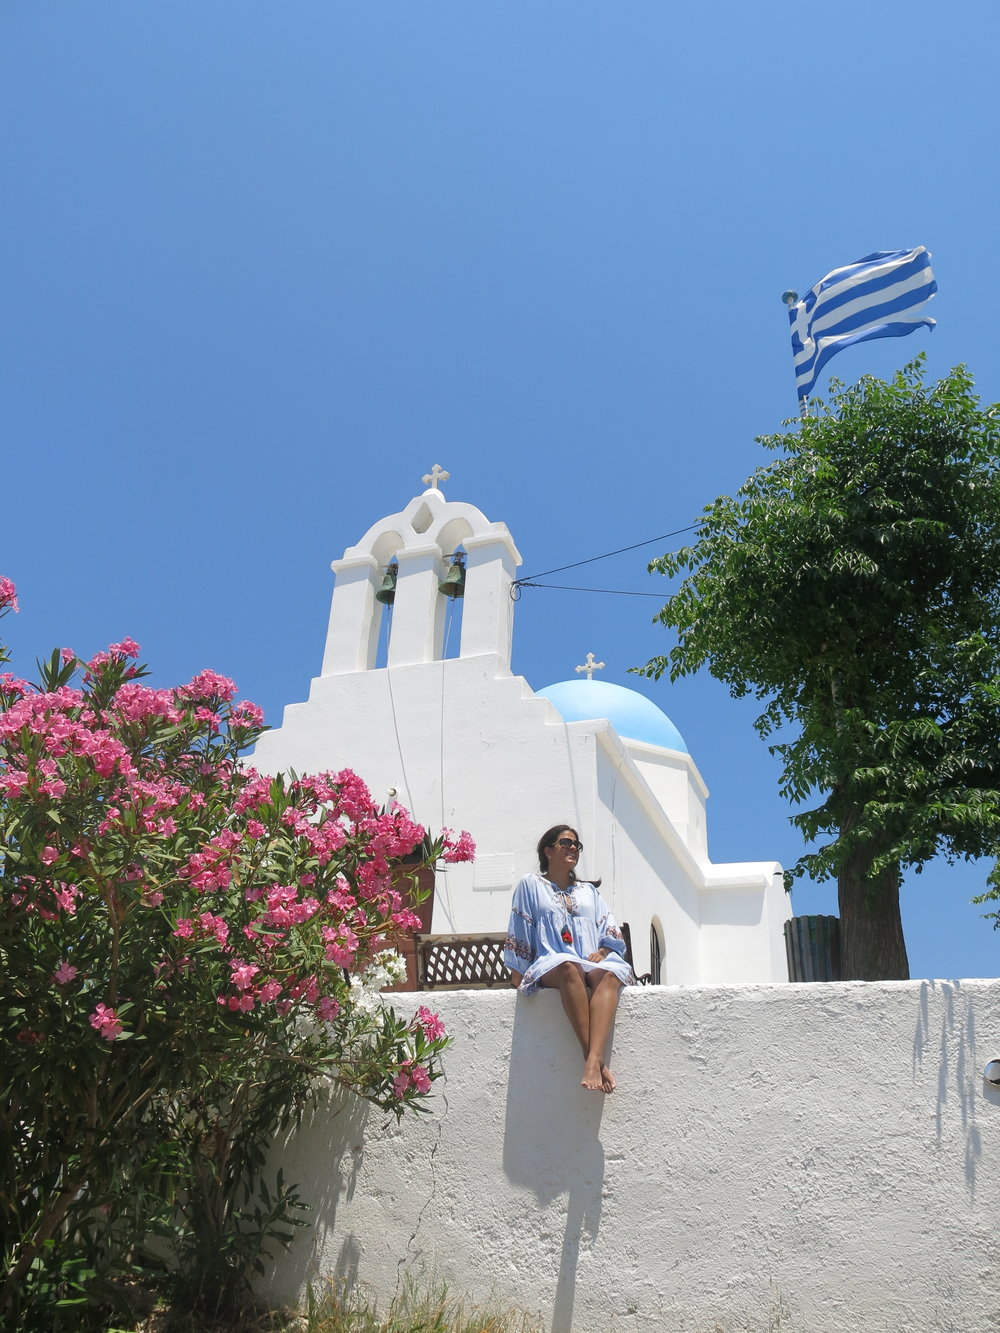 White church, Bougainvillea and blue sky: what else?